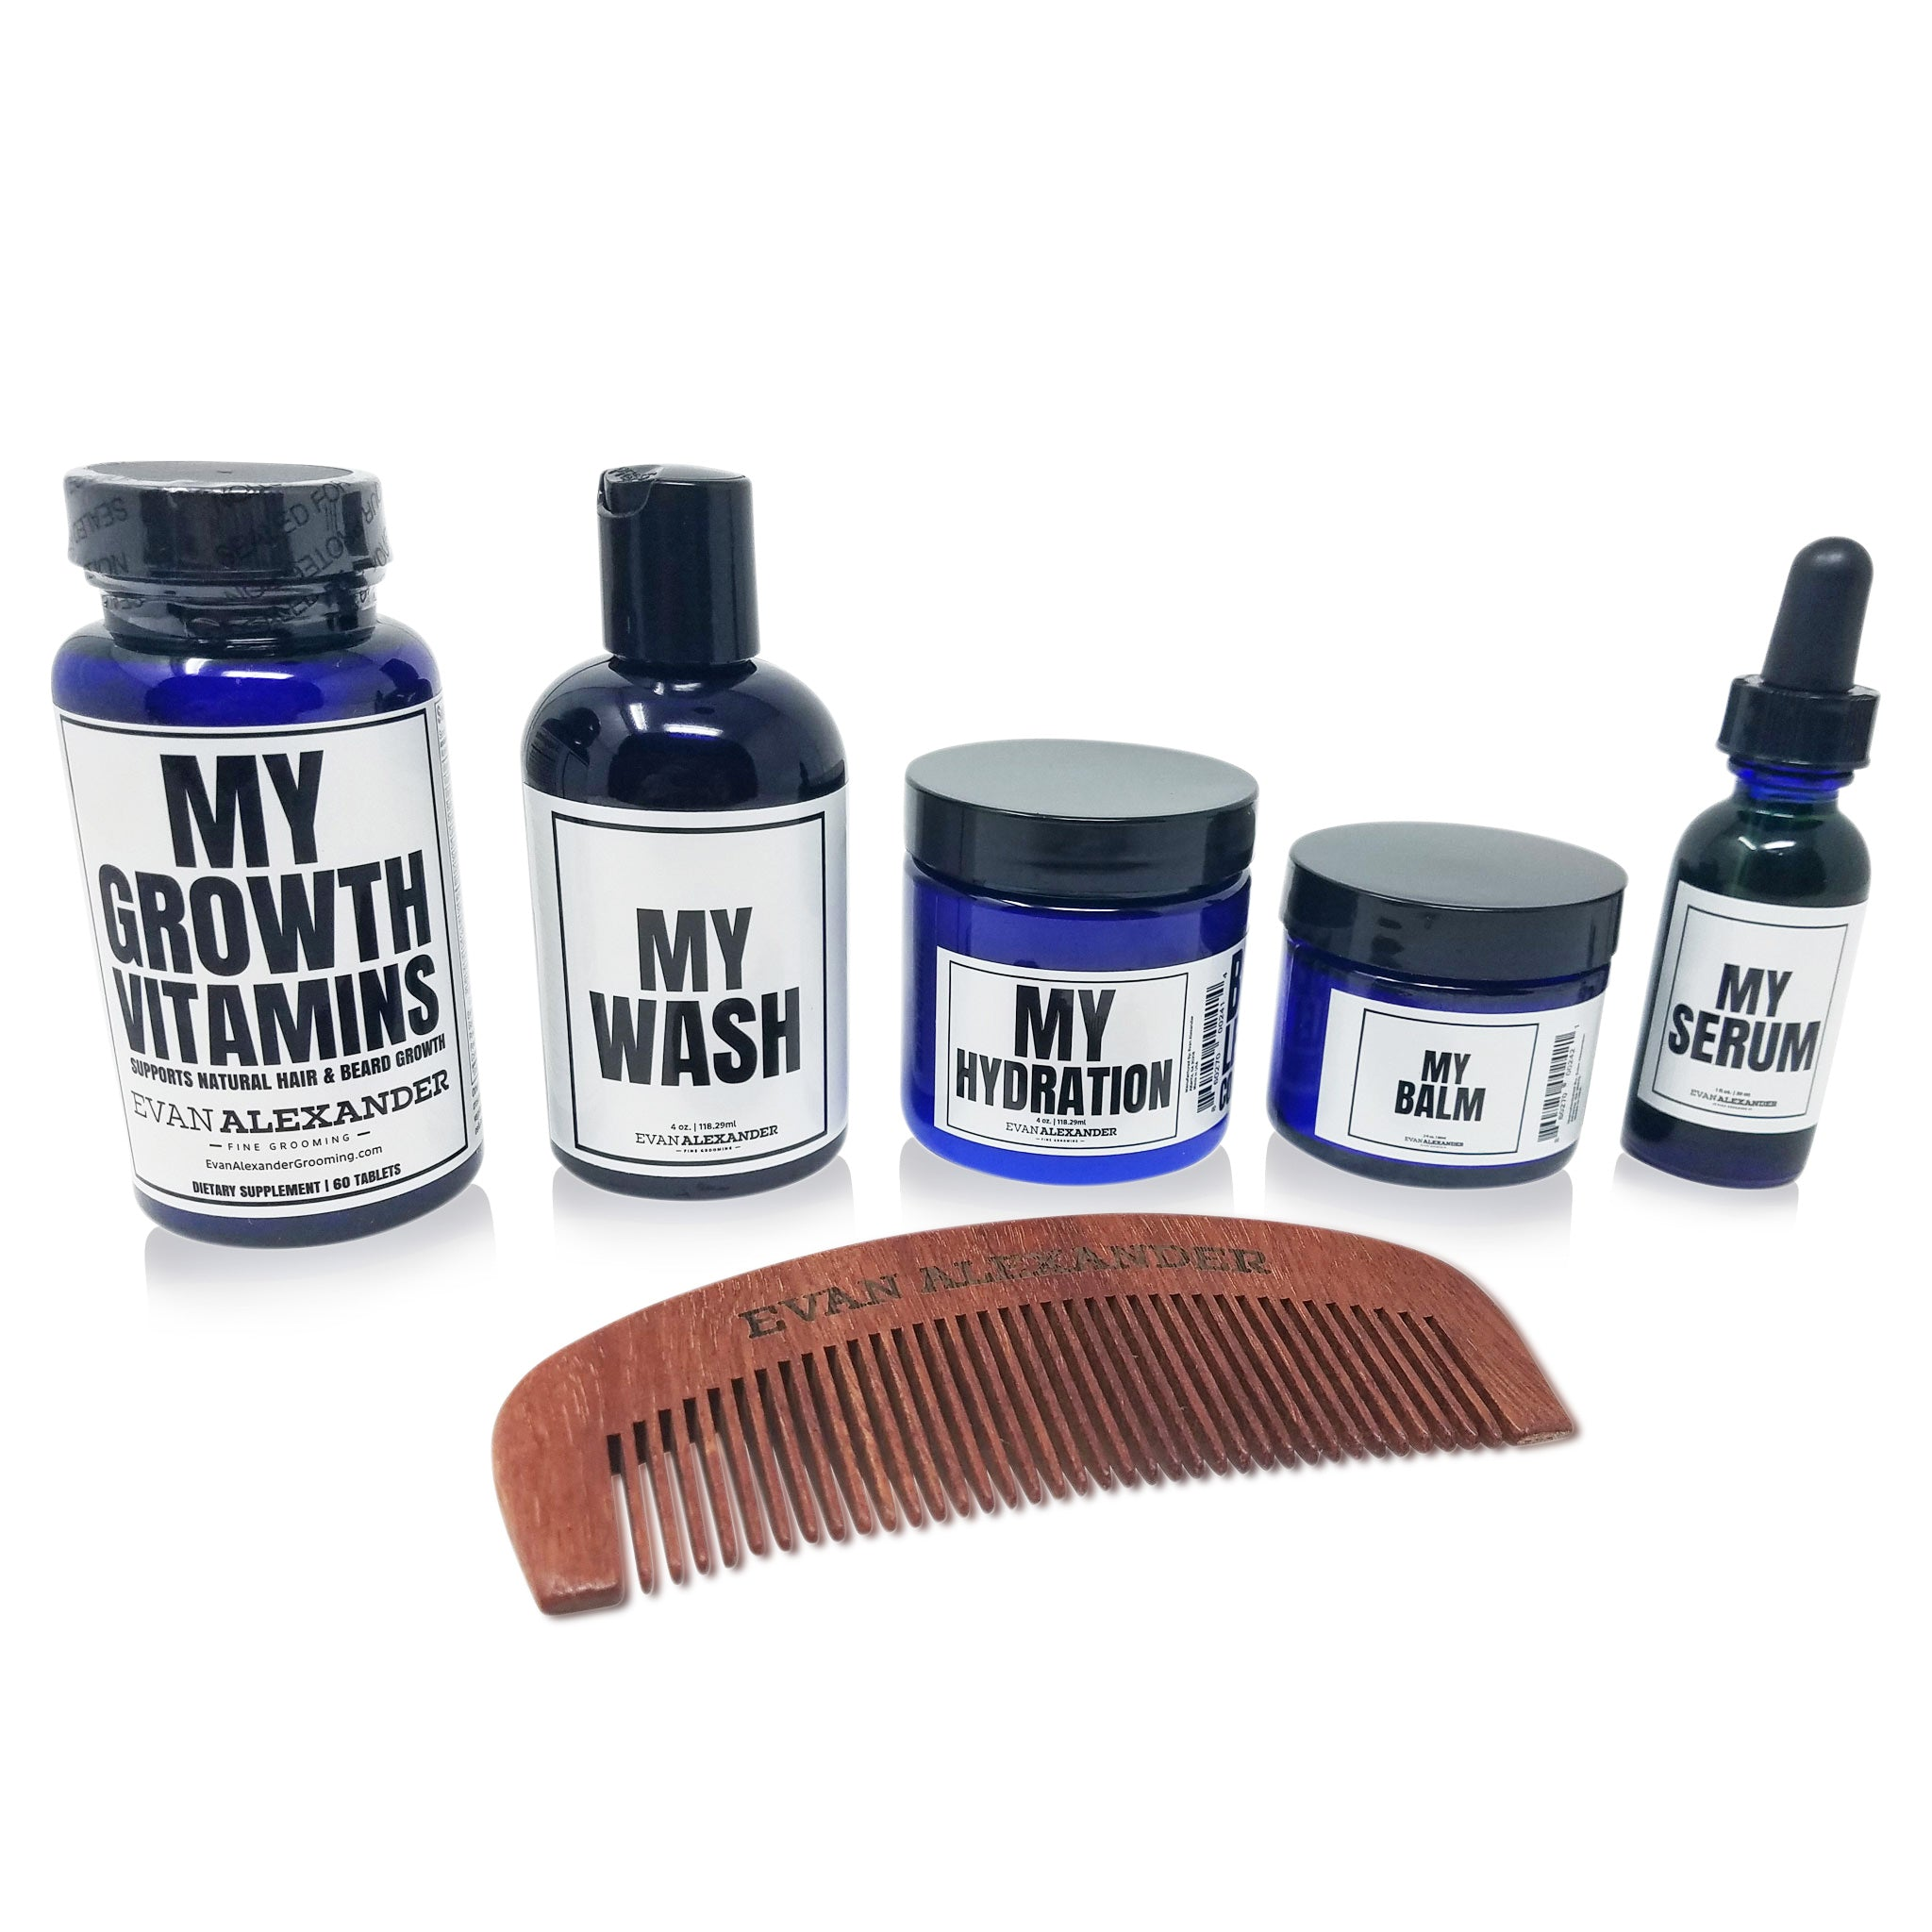 MY GROWTH BEARD KIT (SANDALWOOD COMB)